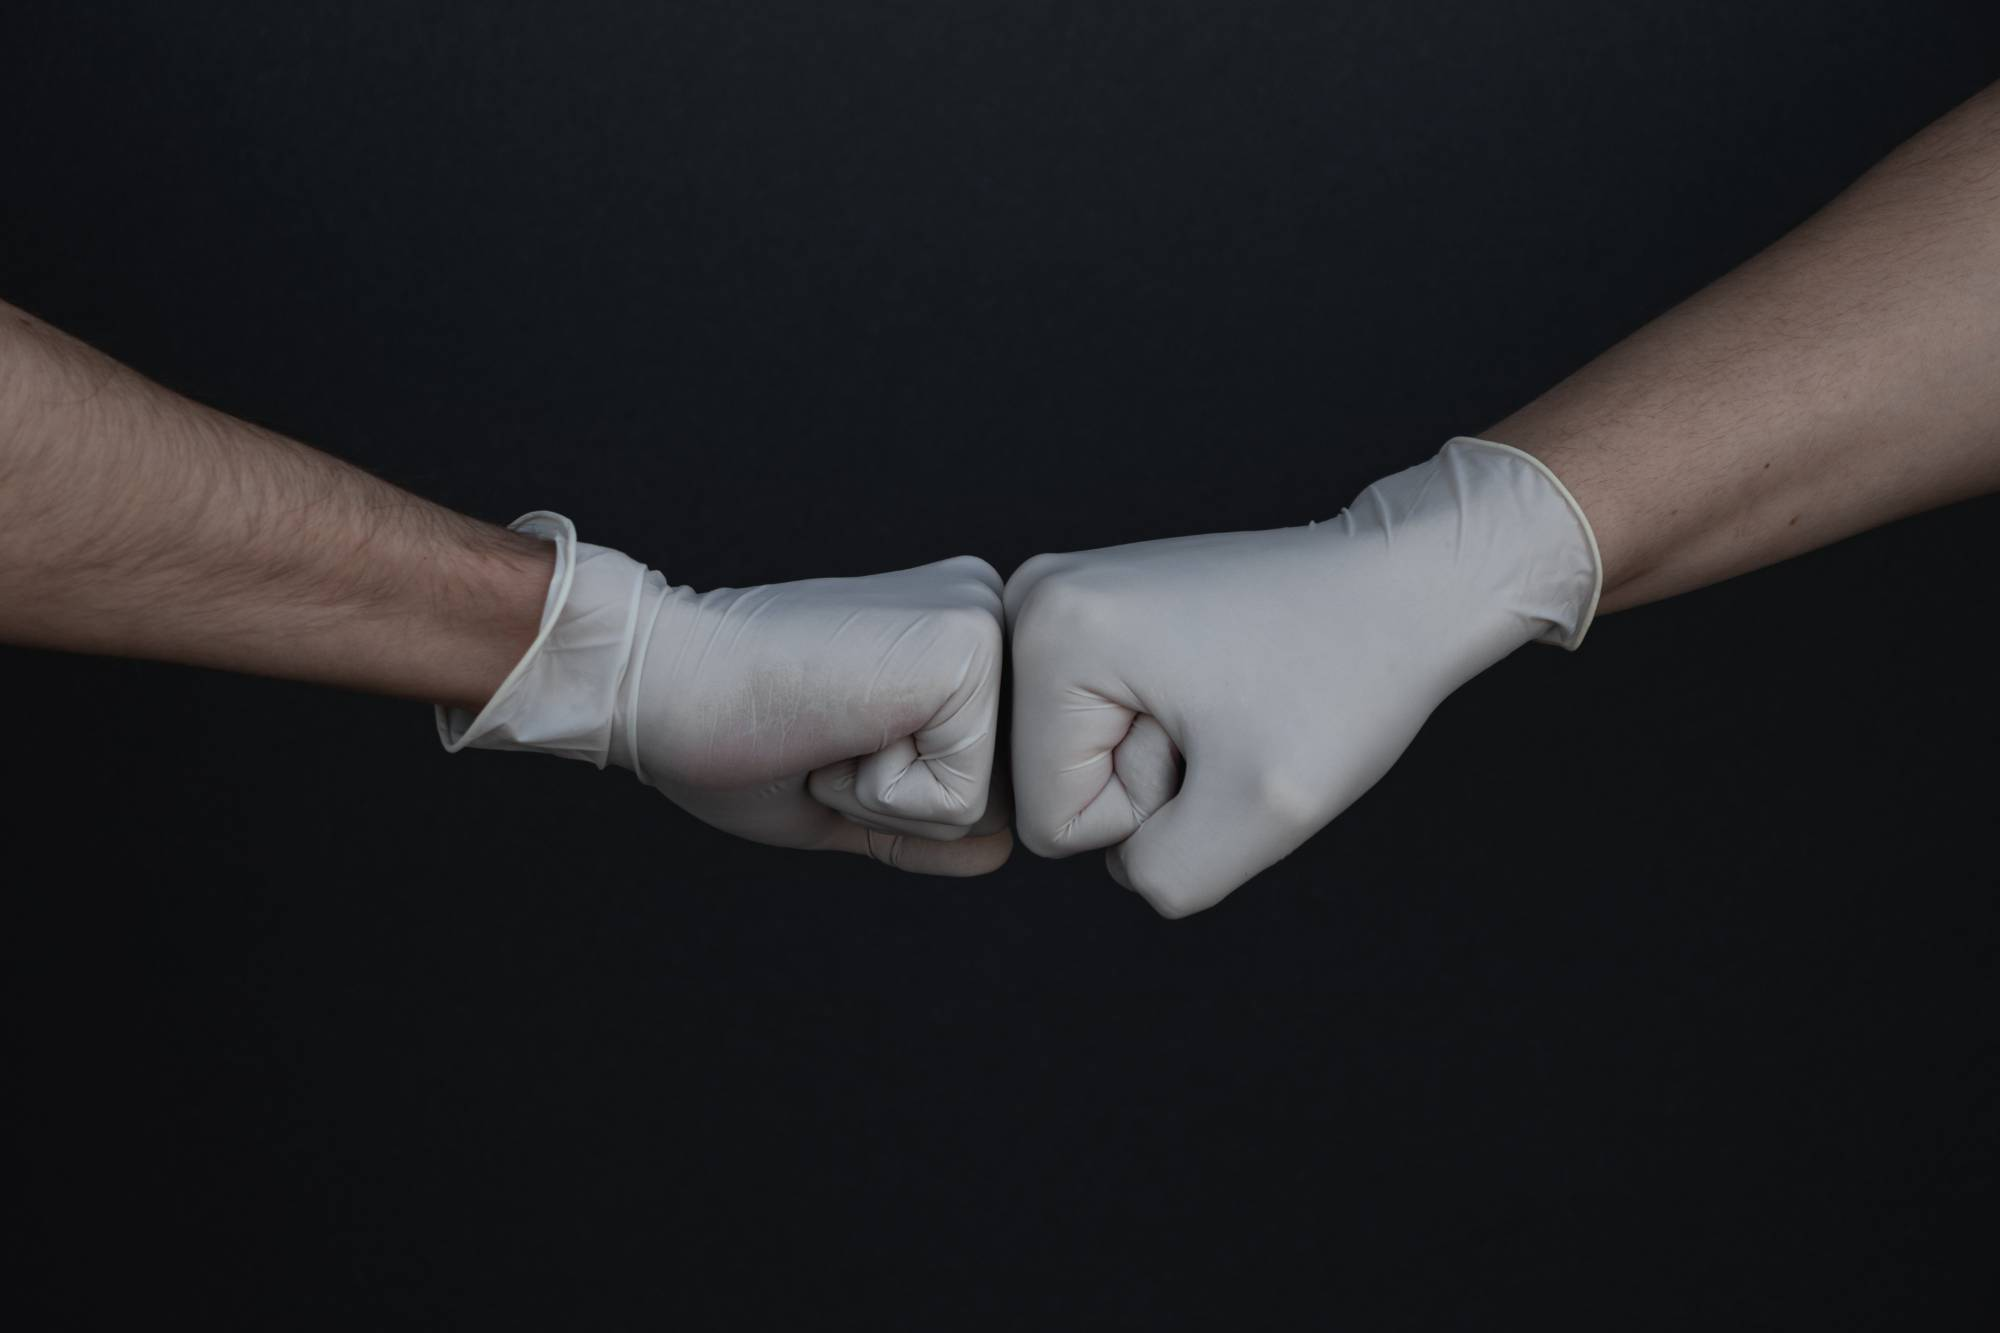 Two hands in gloves doing a fist bump